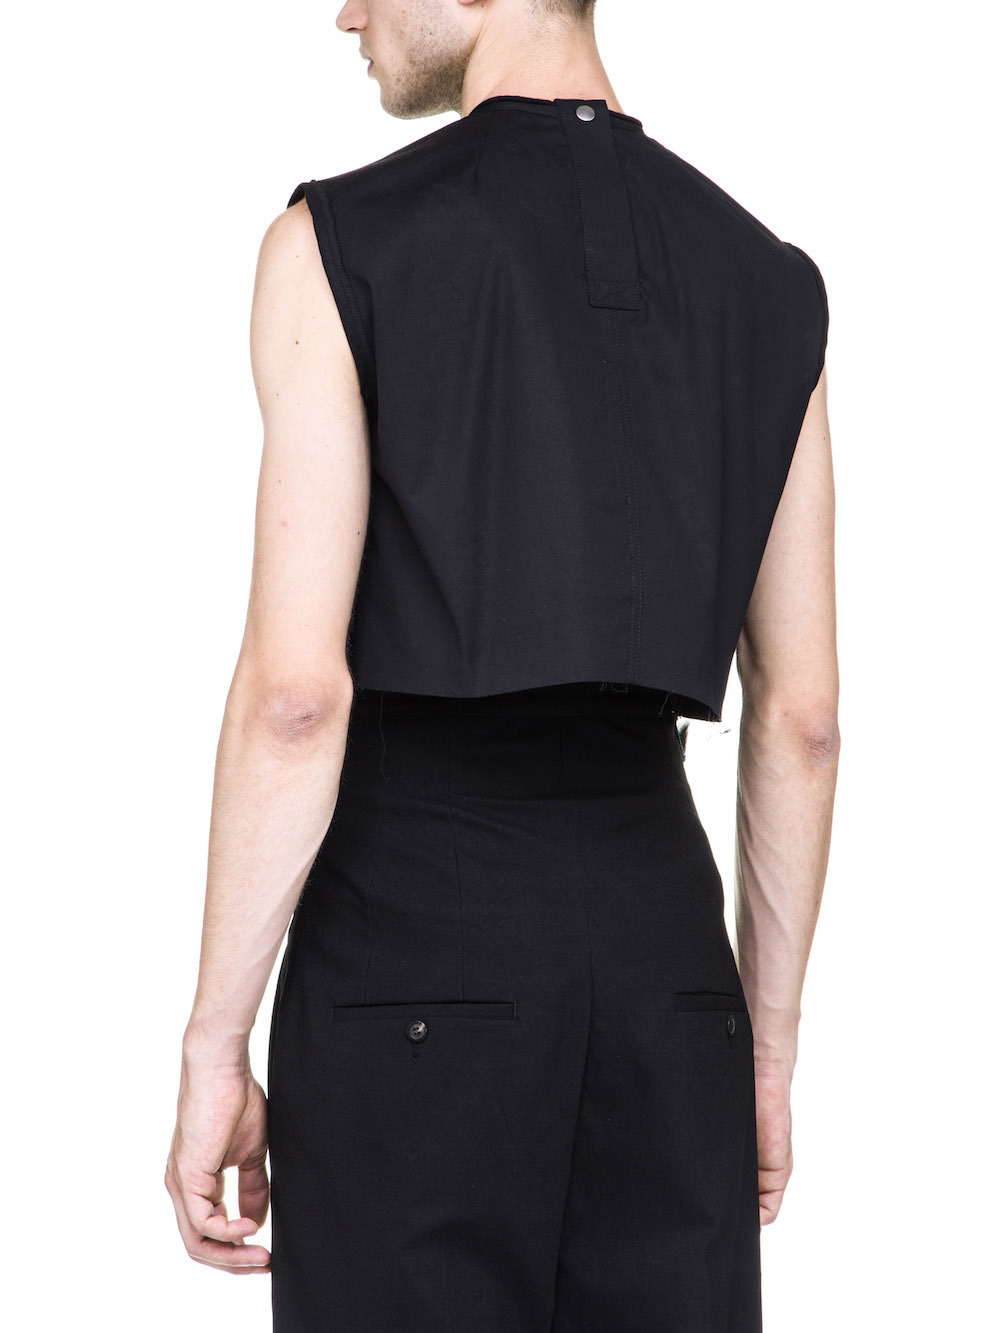 RICK OWENS OFF-THE-RUNWAY SUBHUMAN TOP SLEEVELESS IN BLACK